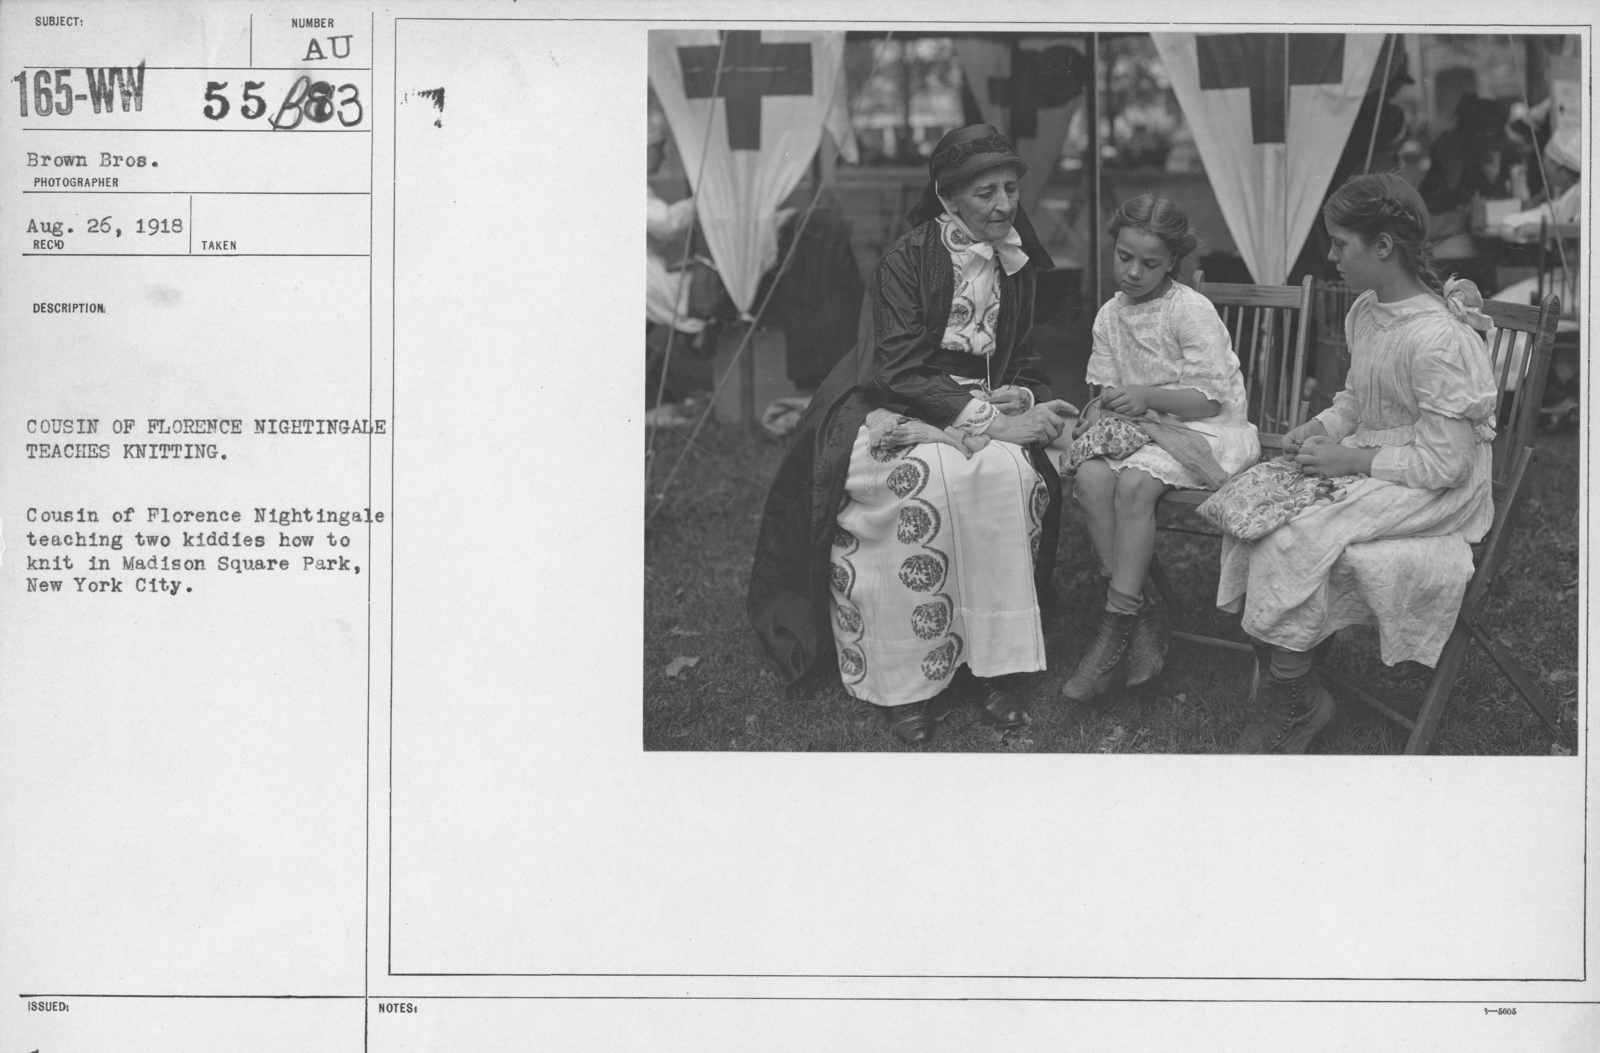 American Red Cross - N thru W - Cousin of Florence Nightingale teaches knitting. Cousin of Florence Nightingale teaching two kiddies how to knit in Madison Square Park, New York City